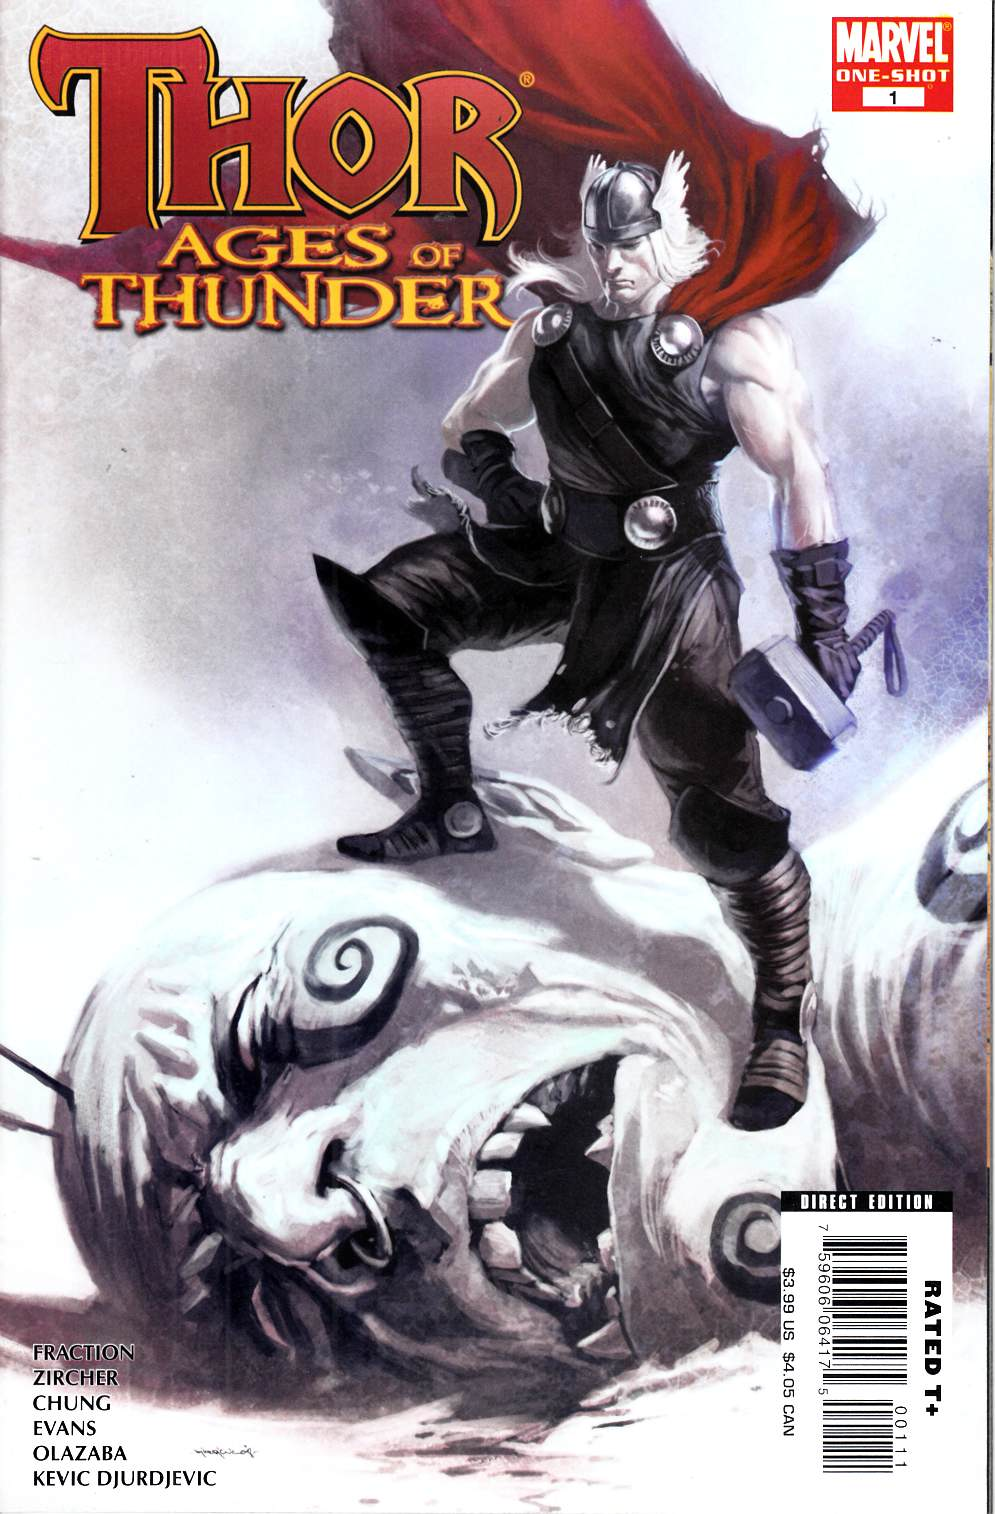 Thor Ages of Thunder #1 Near Mint (9.4) [Marvel Comic] THUMBNAIL